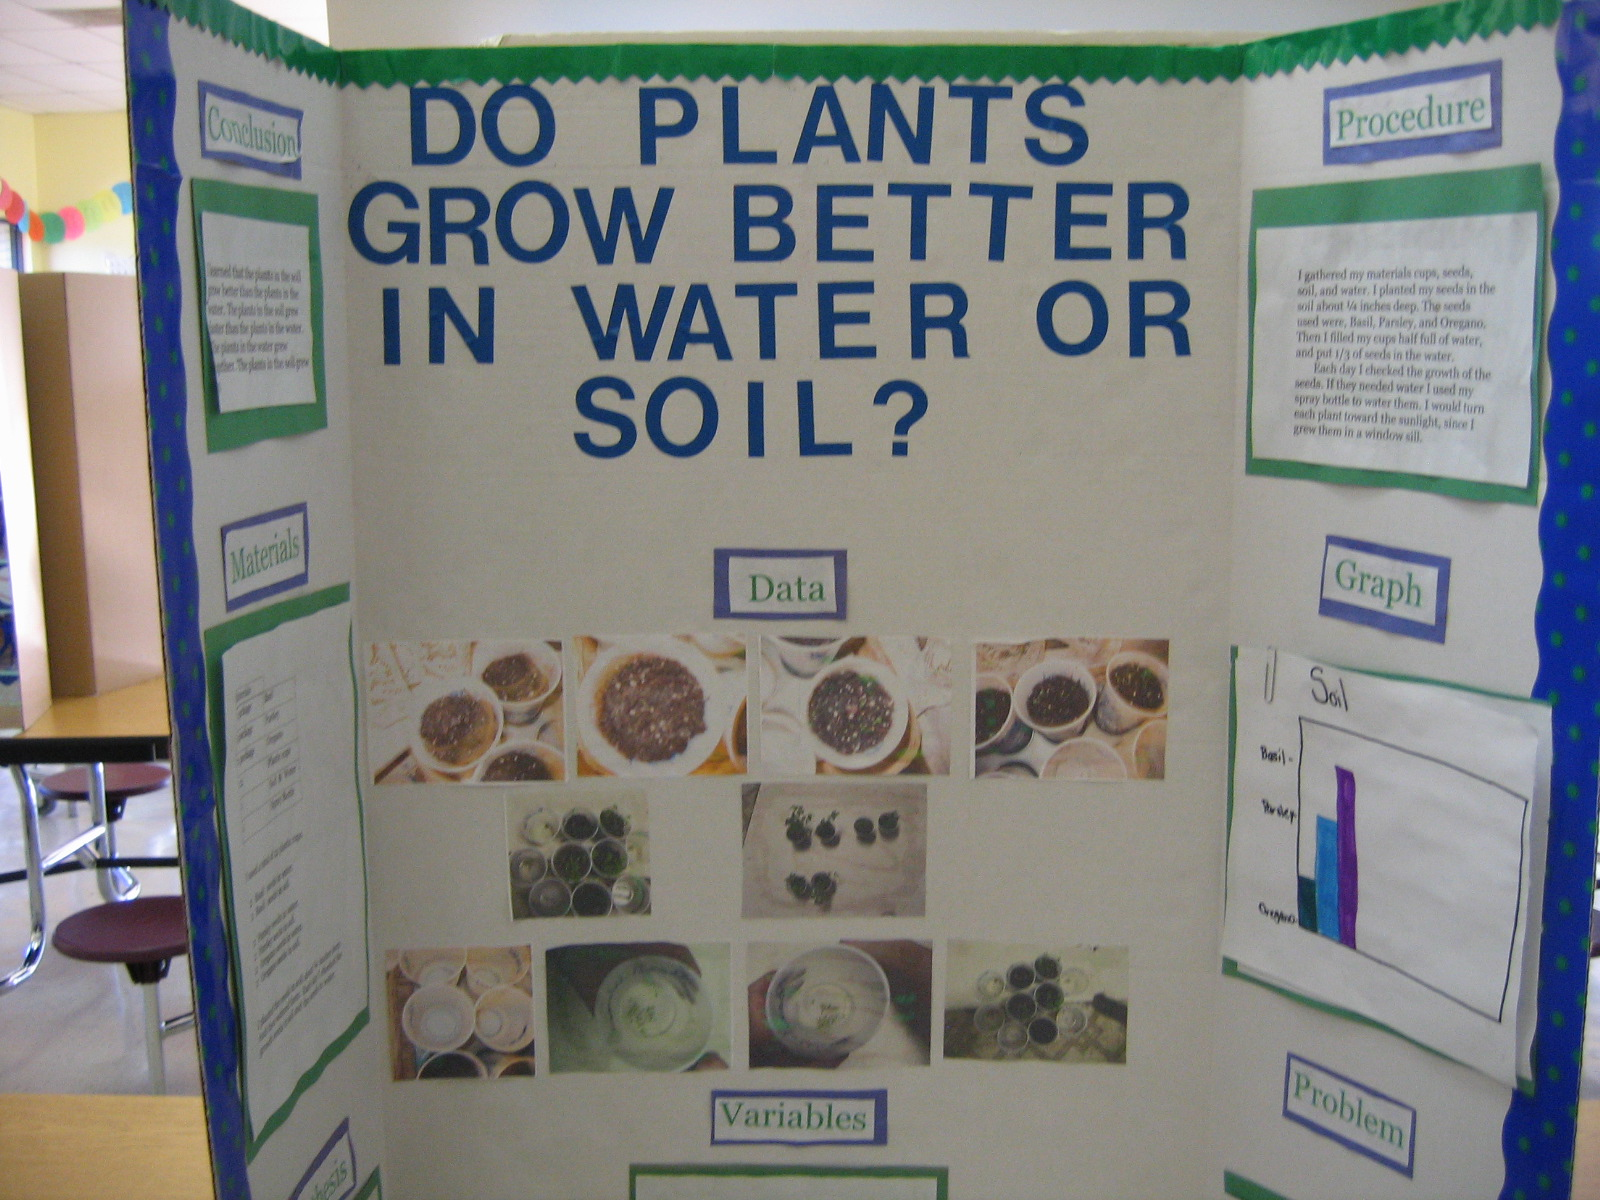 Do Plants Grow Better In Water Or Soil